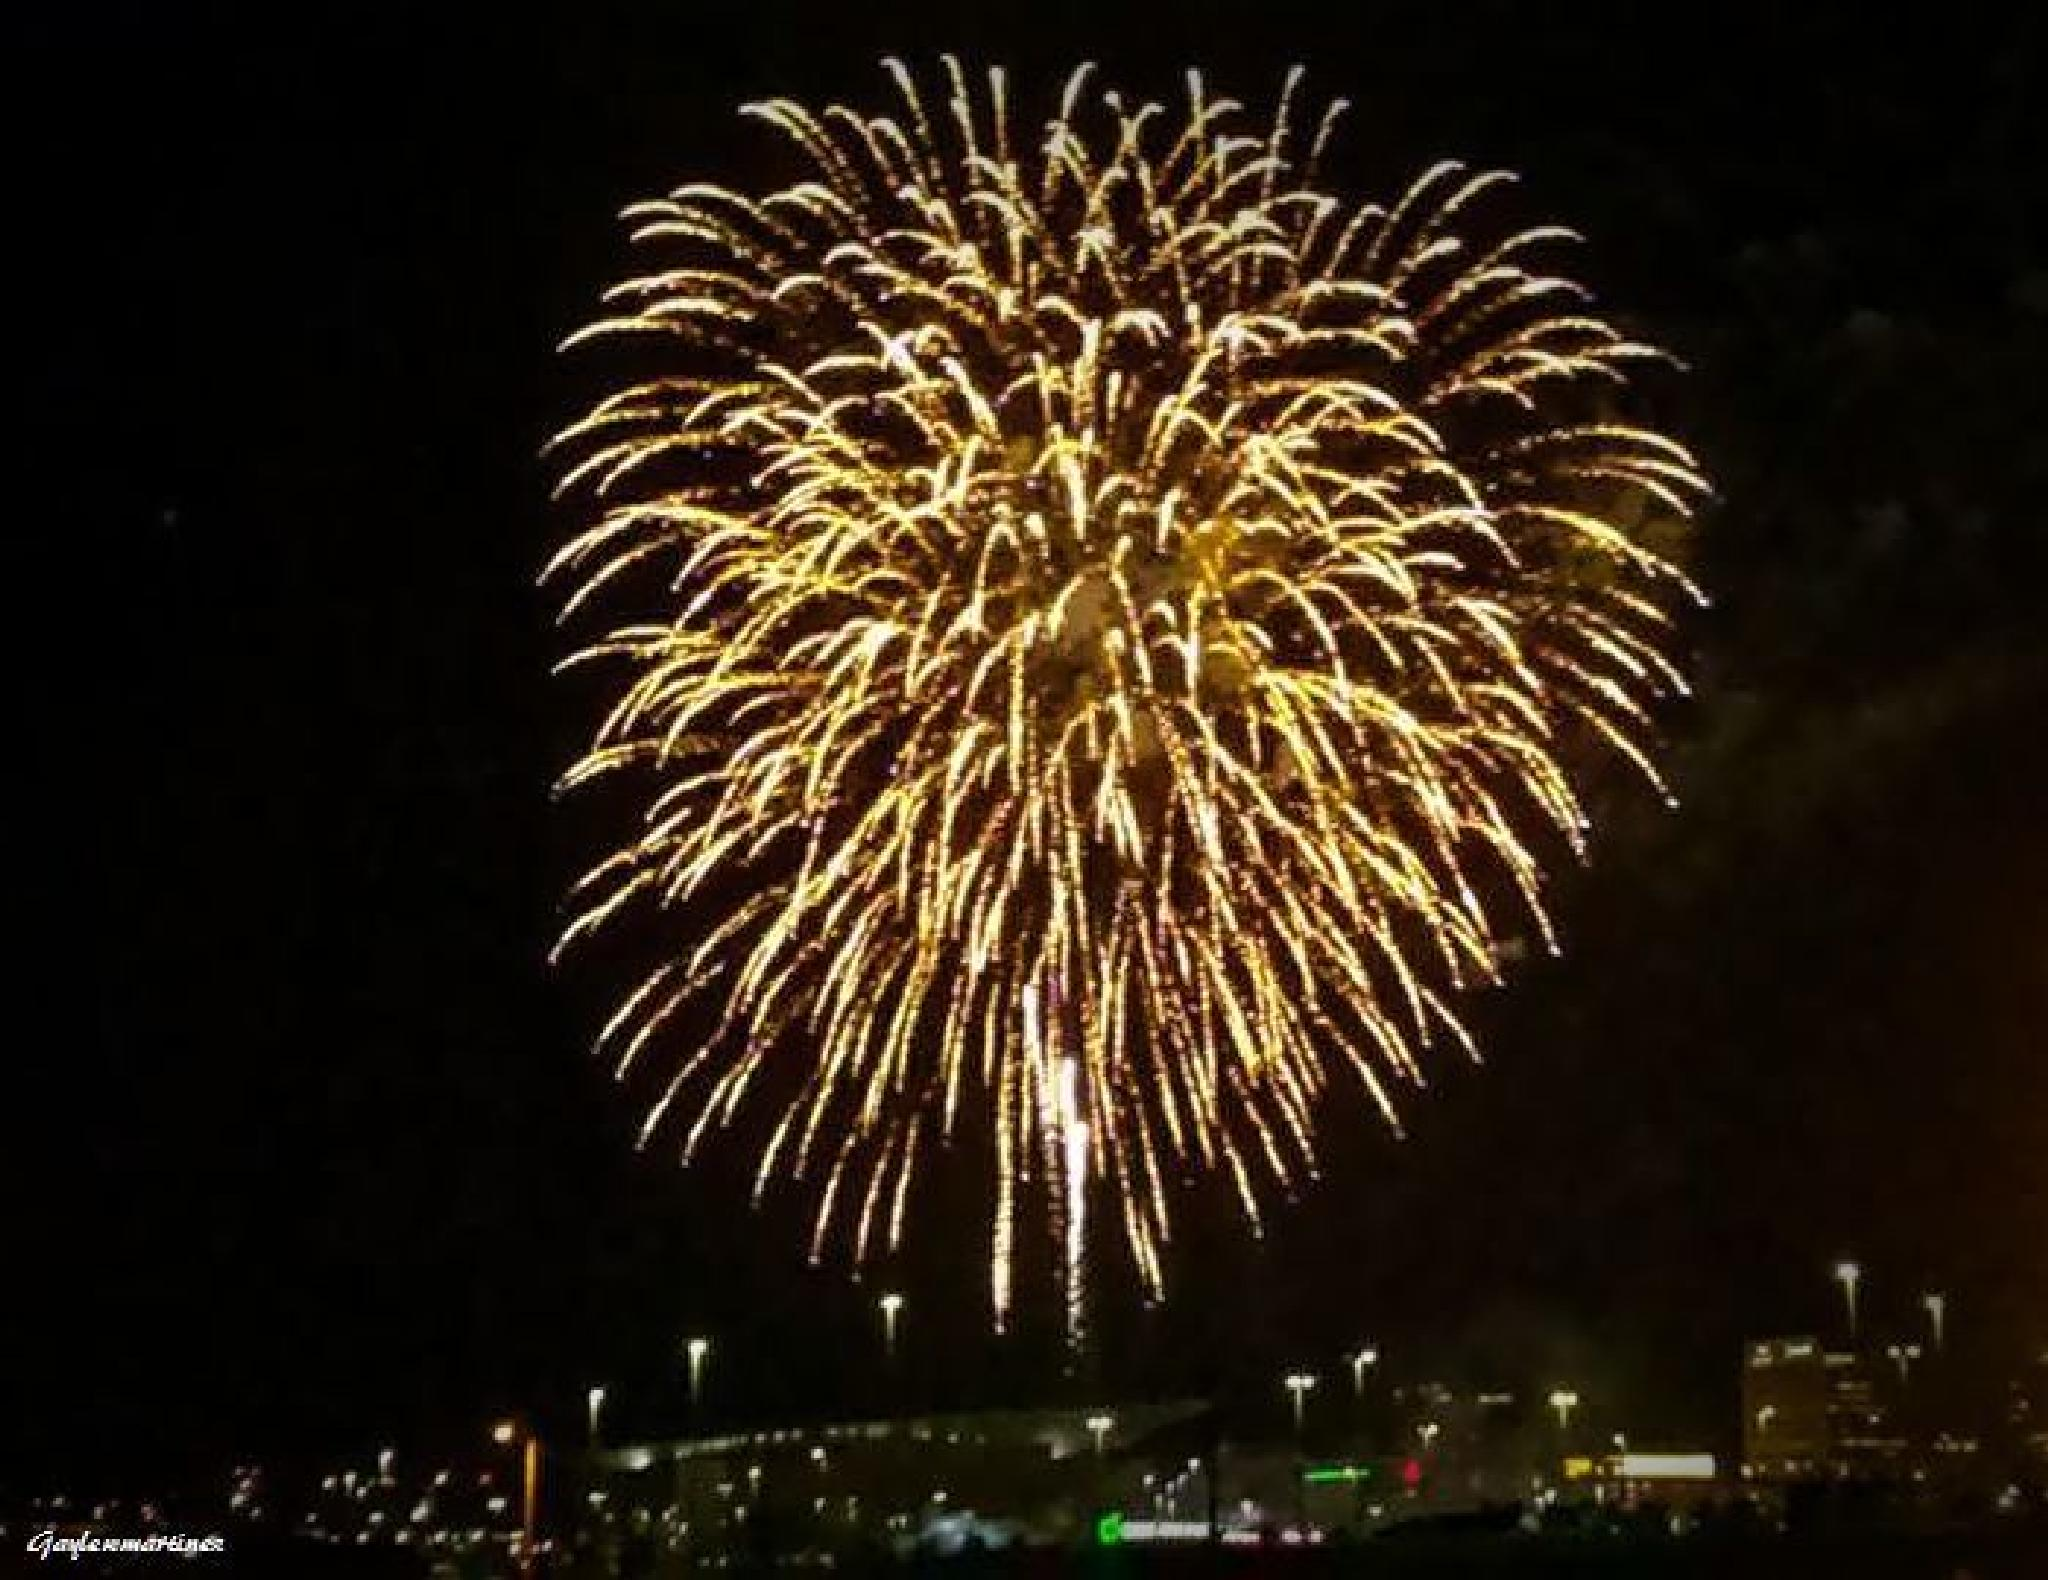 Fireworks over the City by gayle.wolfemartinez